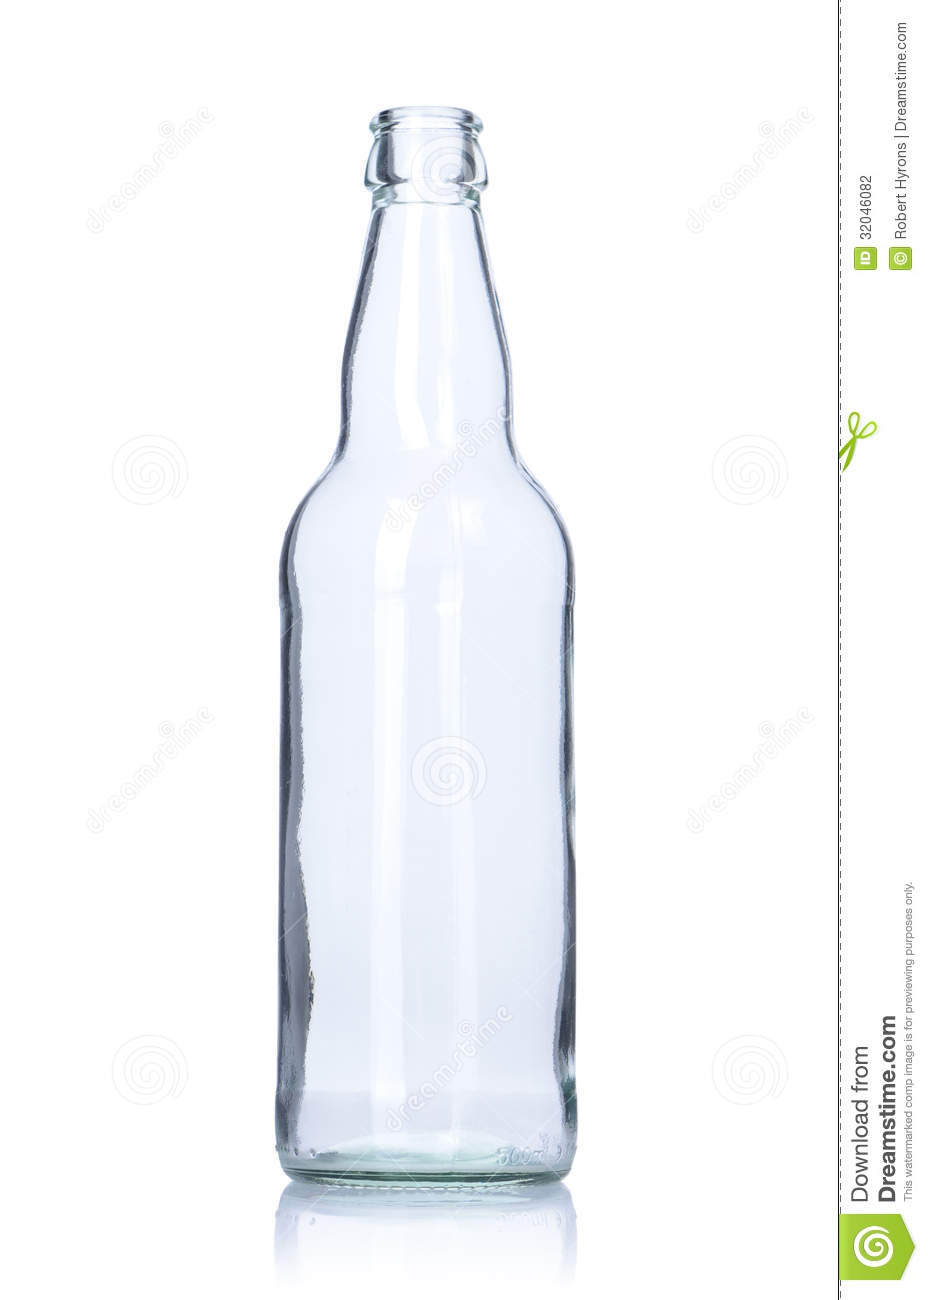 bc424f9e1ba6 Clear empty glass bottle stock photo. Image of objects - 32046082